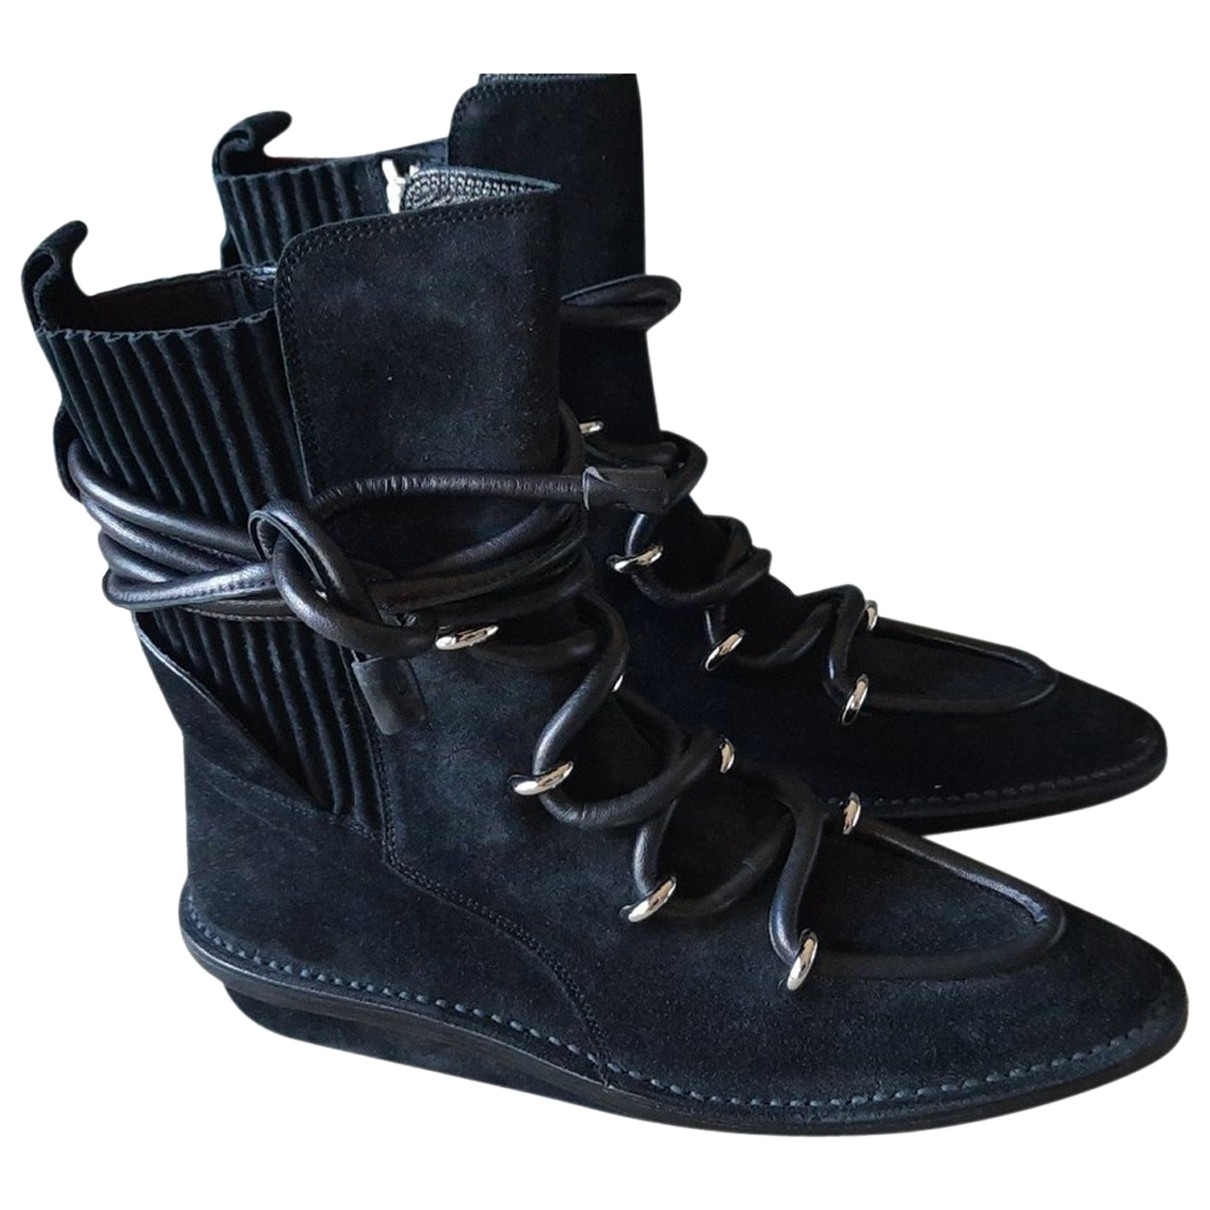 Balenciaga N Black Suede Ankle boots for Women 37 EU